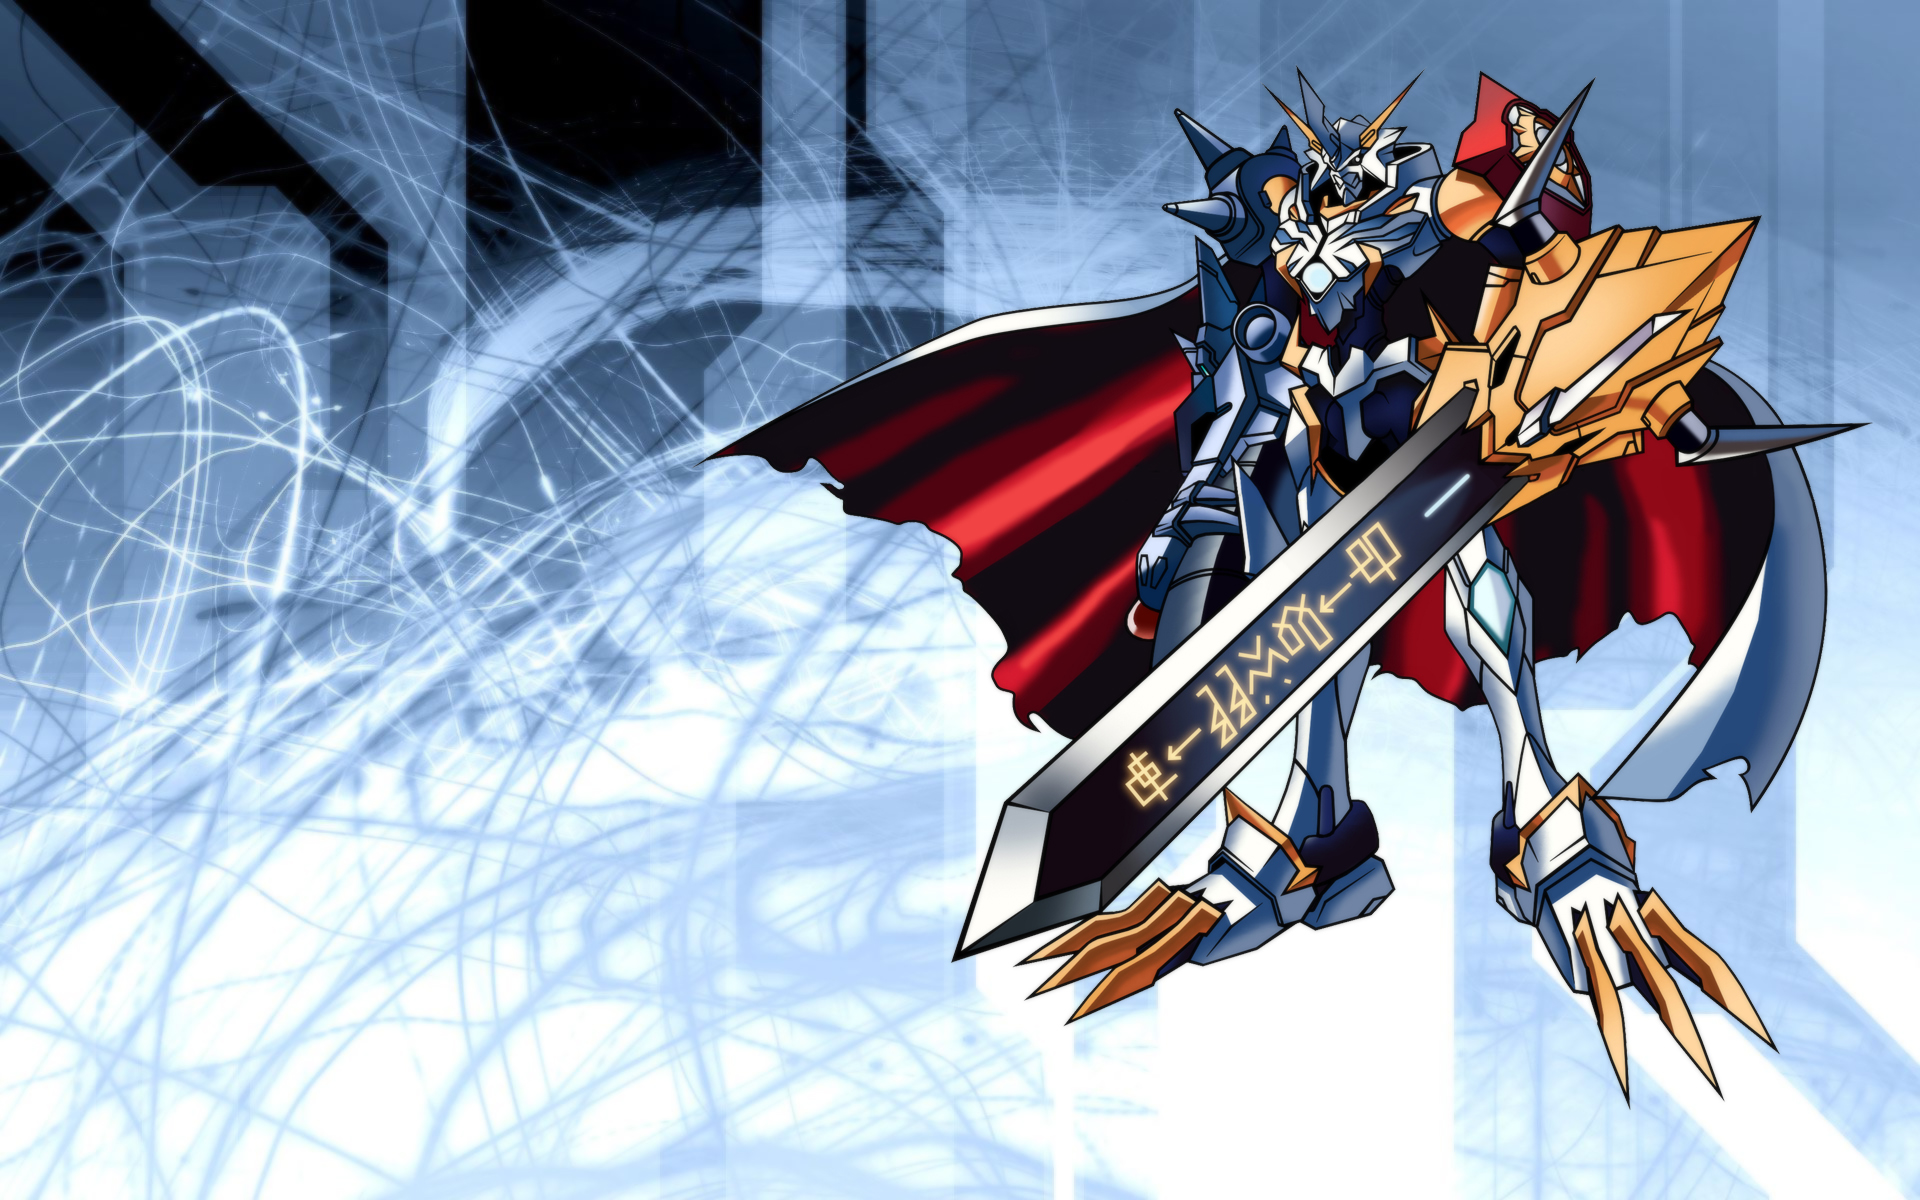 Anime - Digimon  - Omnimon - Wargreymon Wallpaper